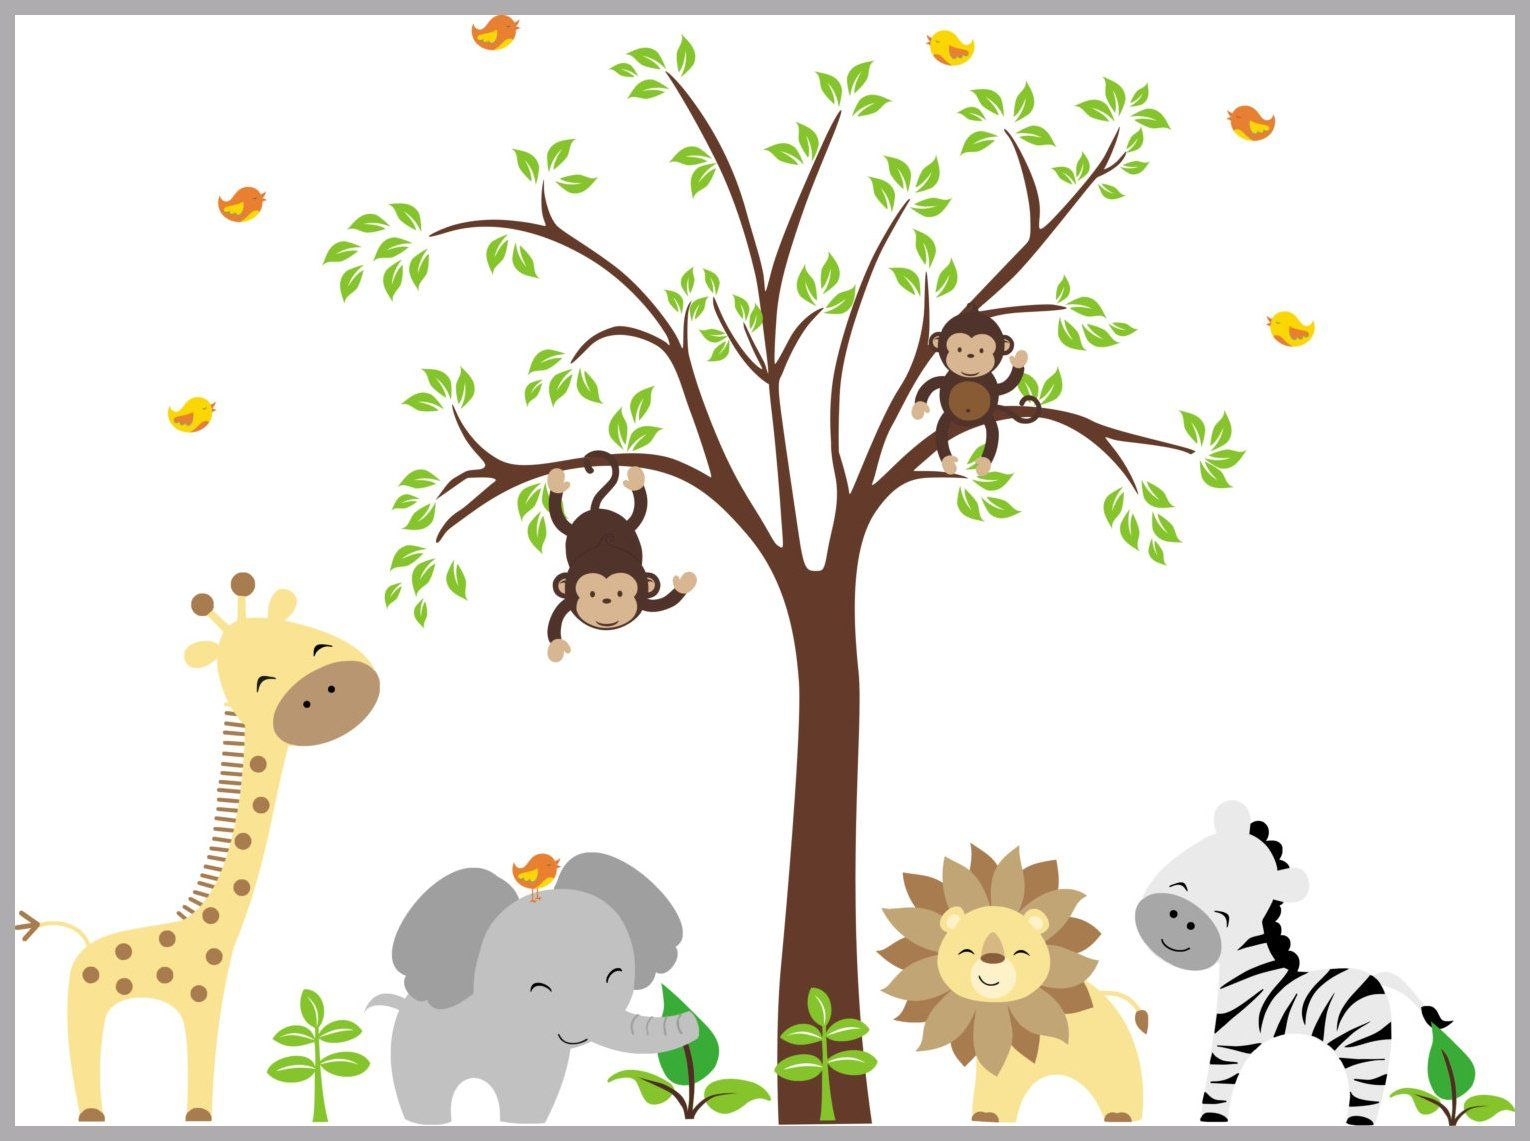 Nursery Wall Decals Removable Animal Decals Reusable Jungle Animal Decals Baby Room Wall Decals Zoo Animal Stickers 84 X 109 Nursery Wall Decals Baby Wall Decals Jungle Wall Stickers